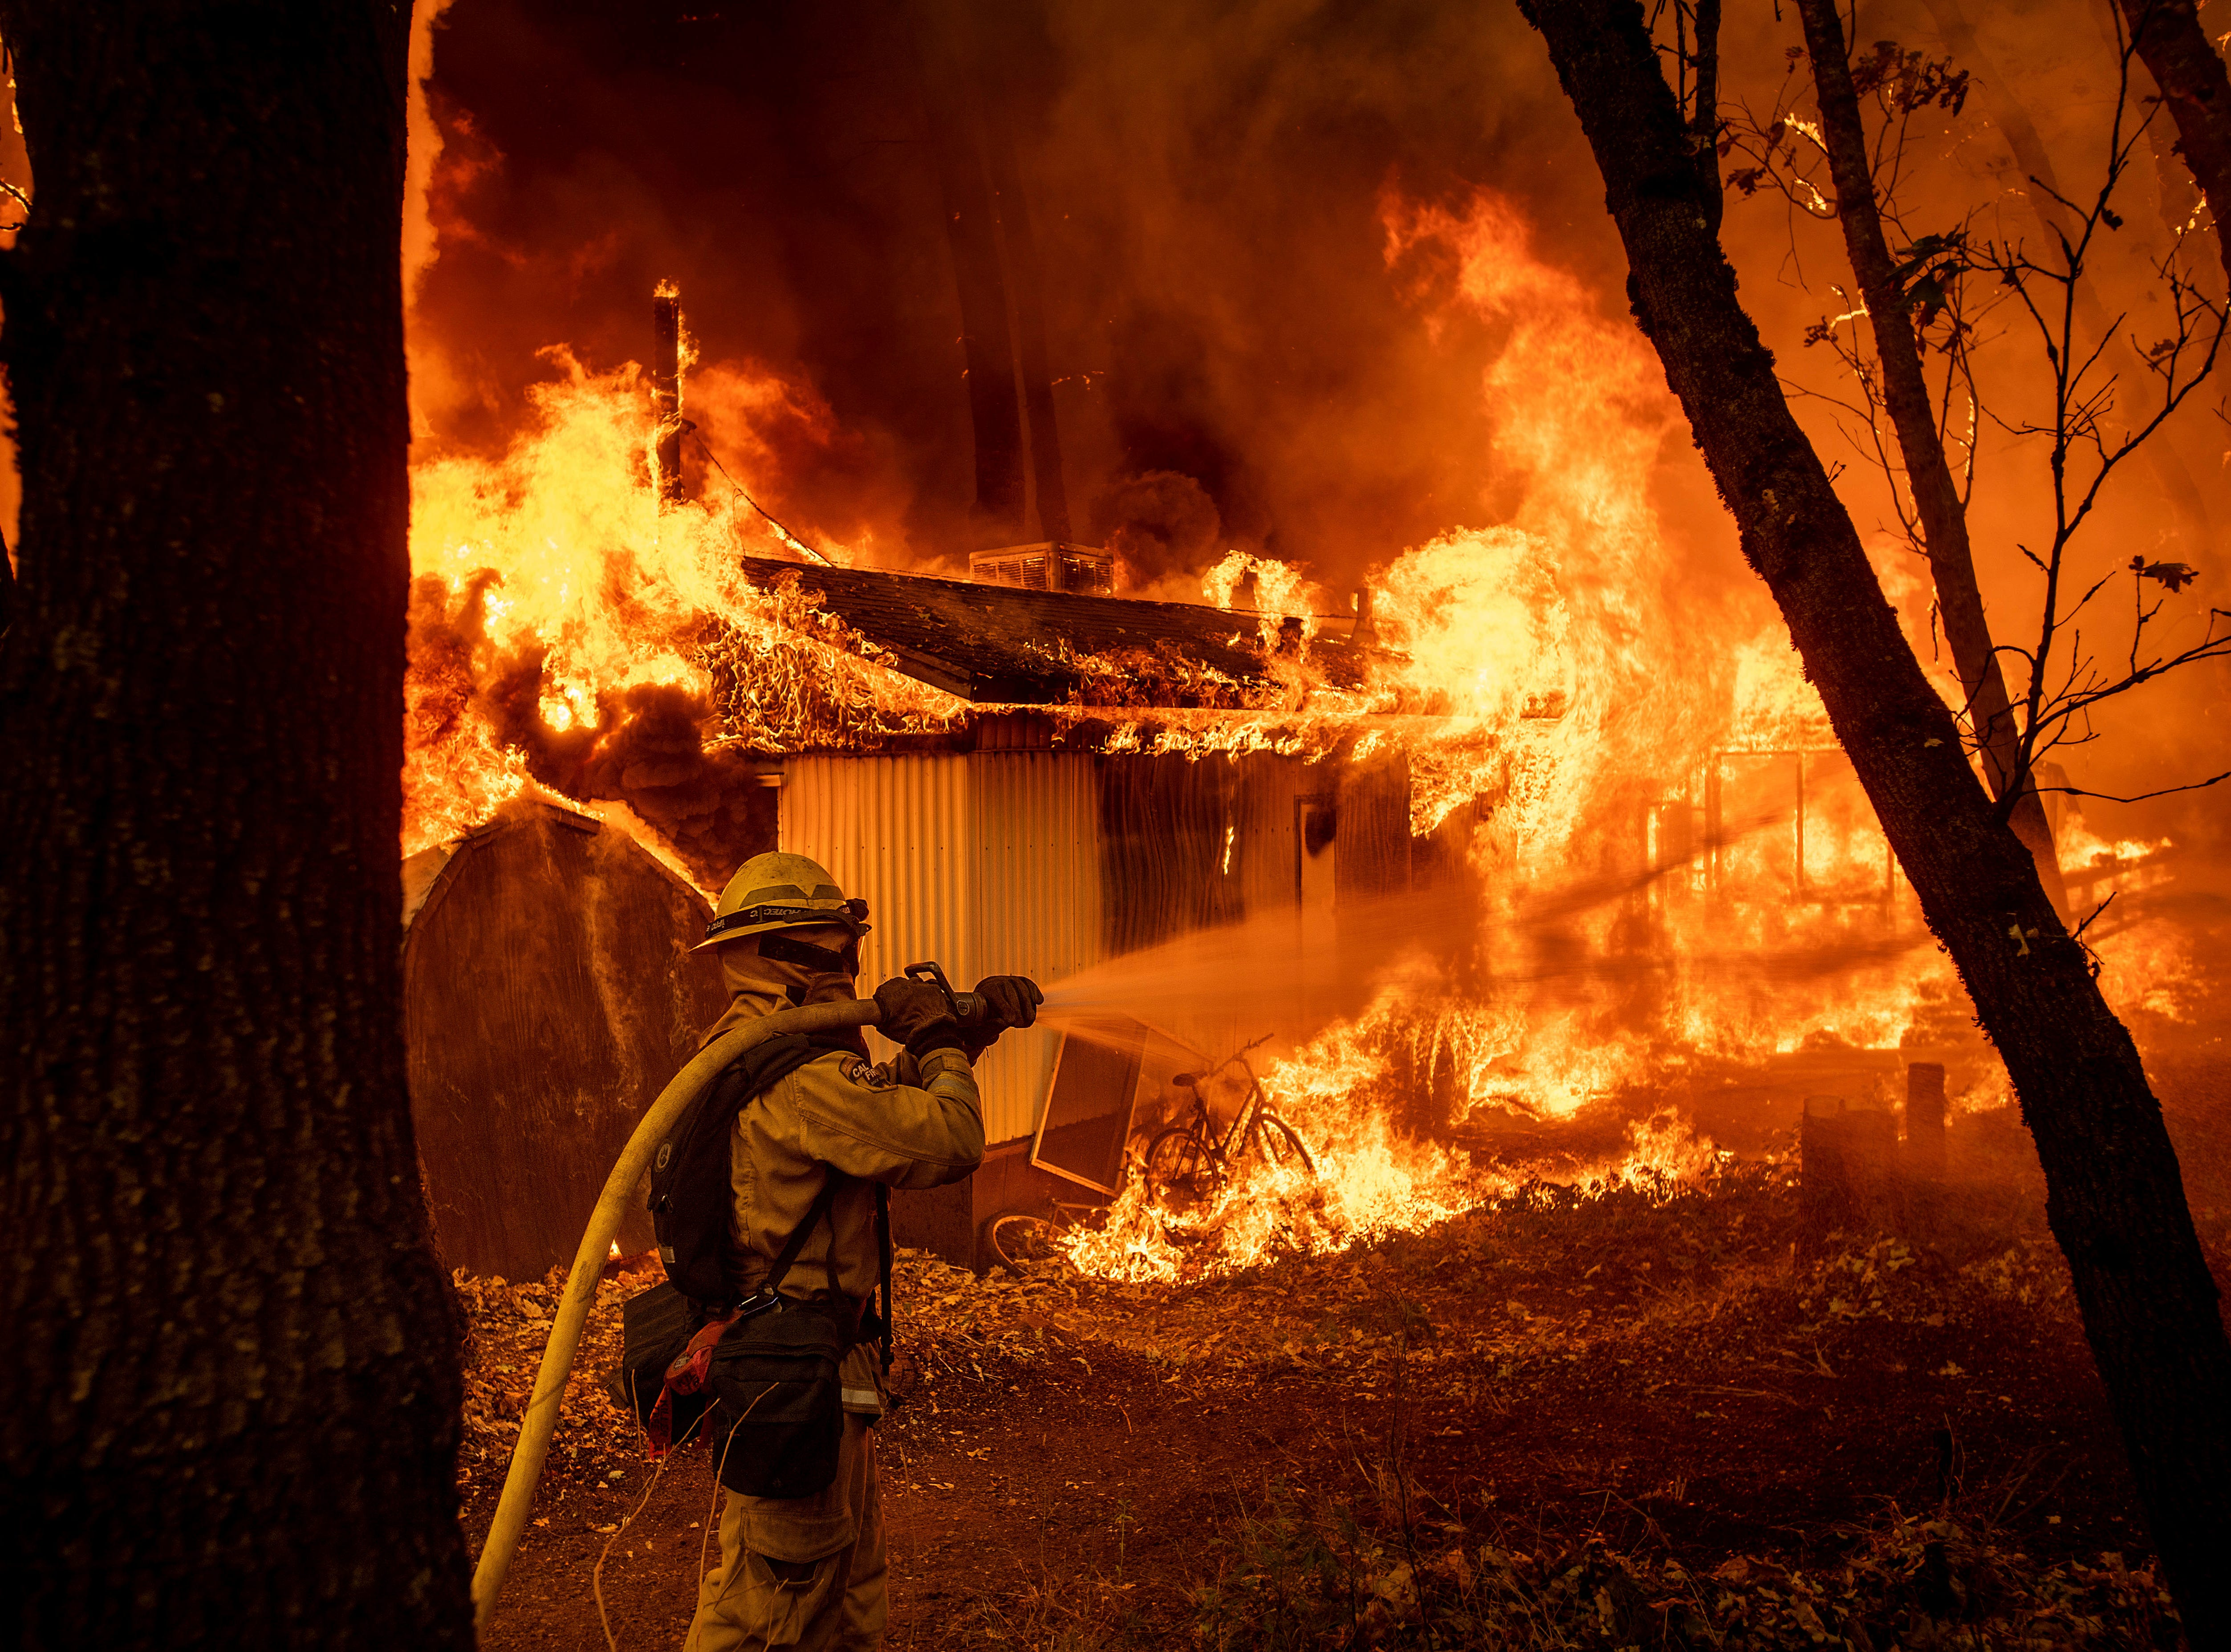 Firefighter Jose Corona sprays water Nov. 9, 2018, as flames from the Camp Fire consume a home in Magalia, California.